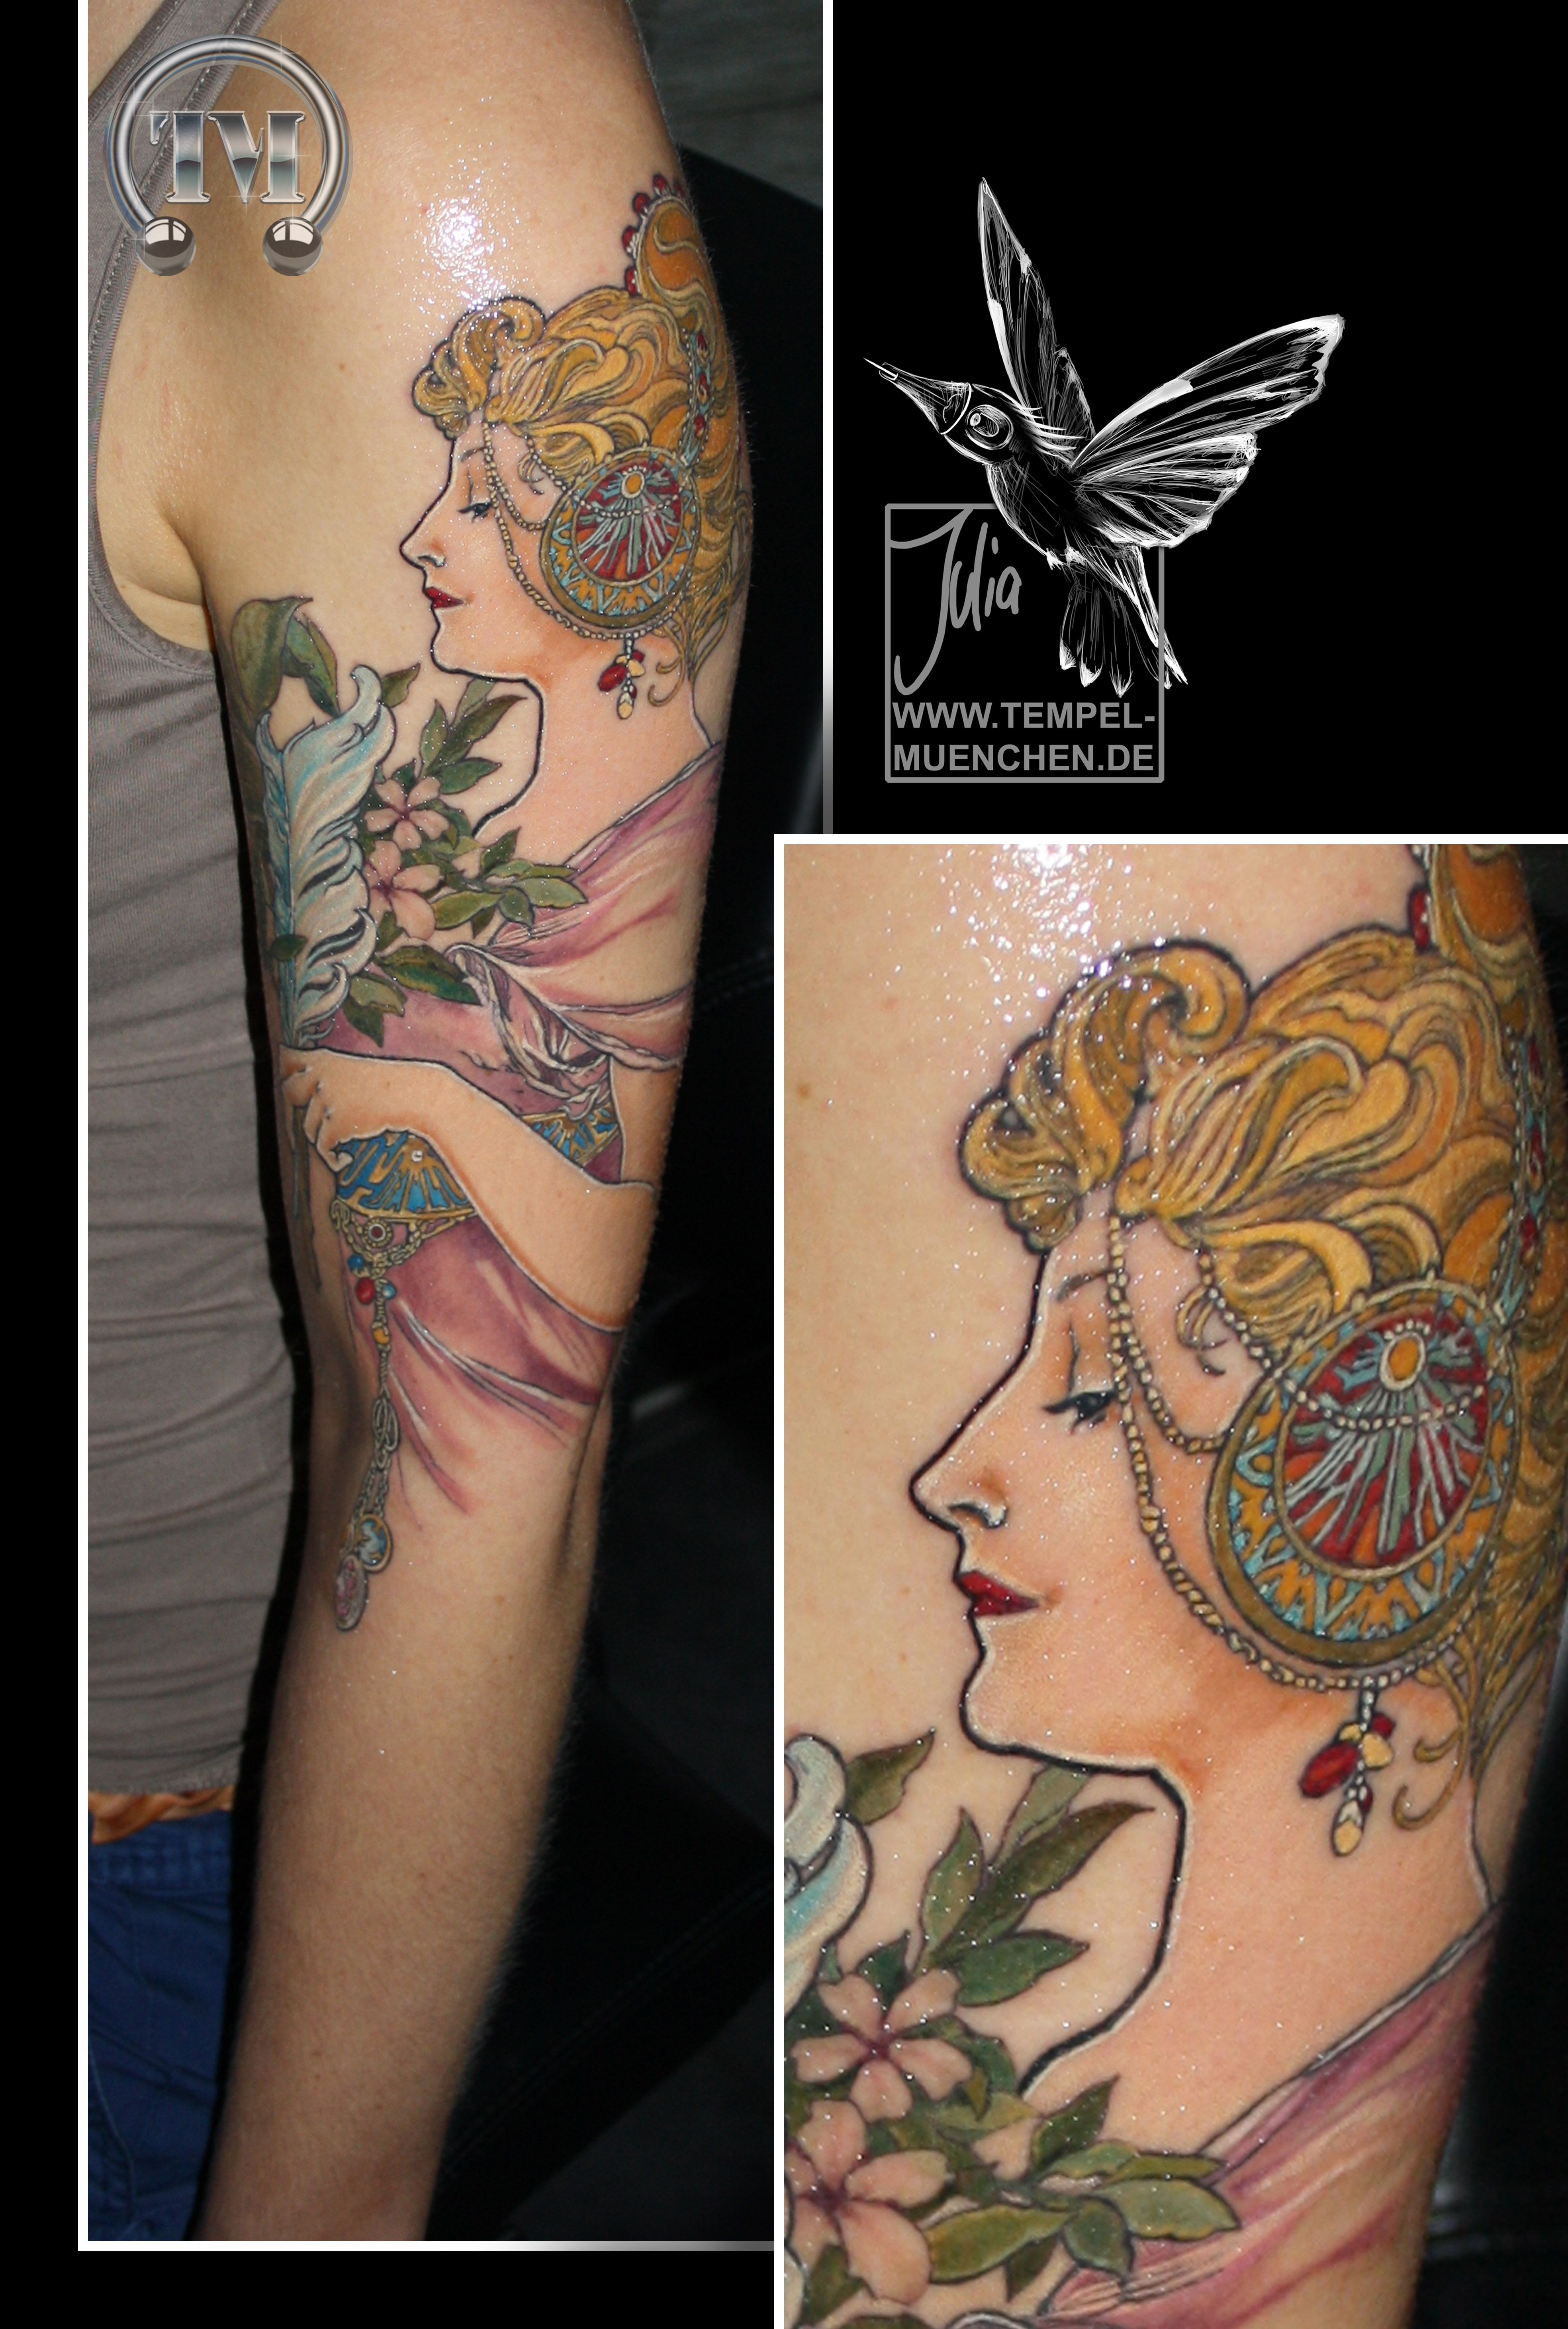 Faszinierend Feder Tattoo Unterarm Galerie Von Alphonse Mucha Mucha Feather Art Nouveau Color